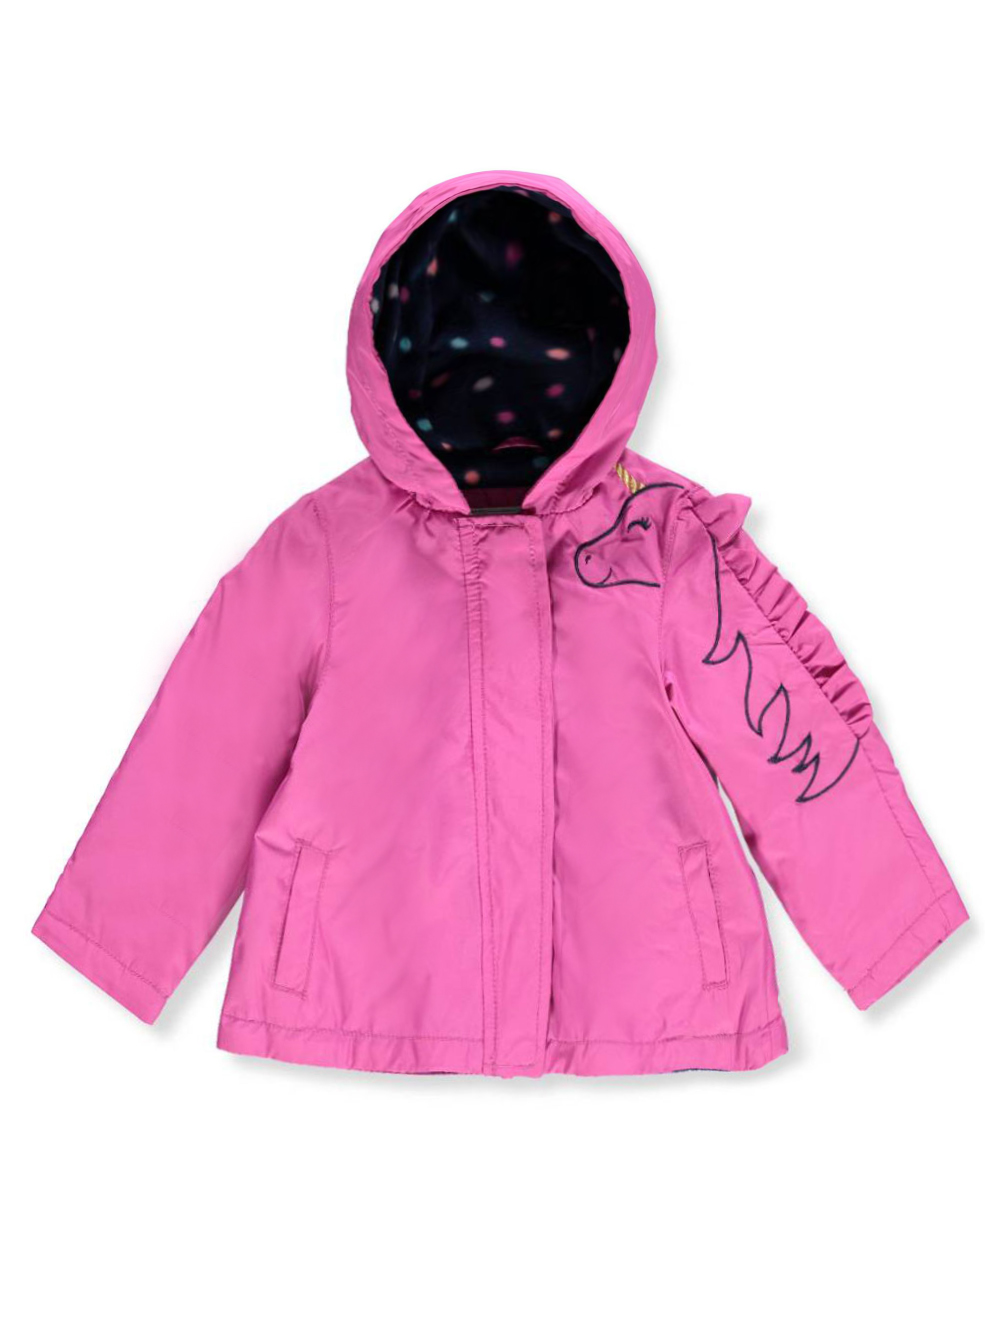 a1d5bf012 Carter s Baby Girls  Hooded Jacket